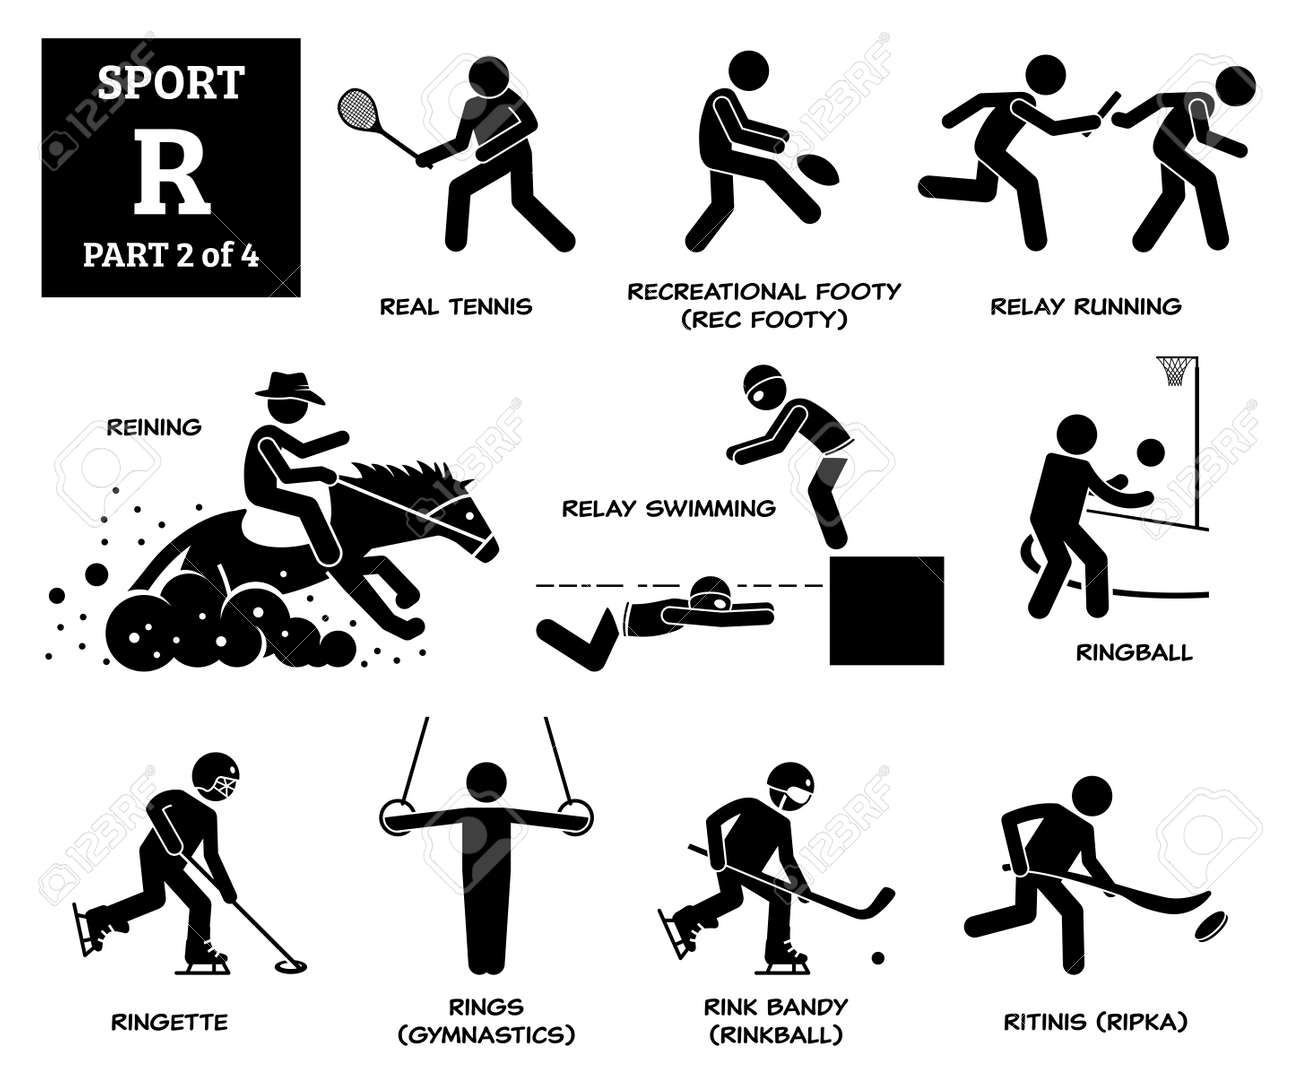 Sport games alphabet R vector icons pictogram. Real tennis, recreational footy, relay running, reining, relay swimming, ringball, ringette, rings gymnastic, rink bandy, and ritinis. - 172074515